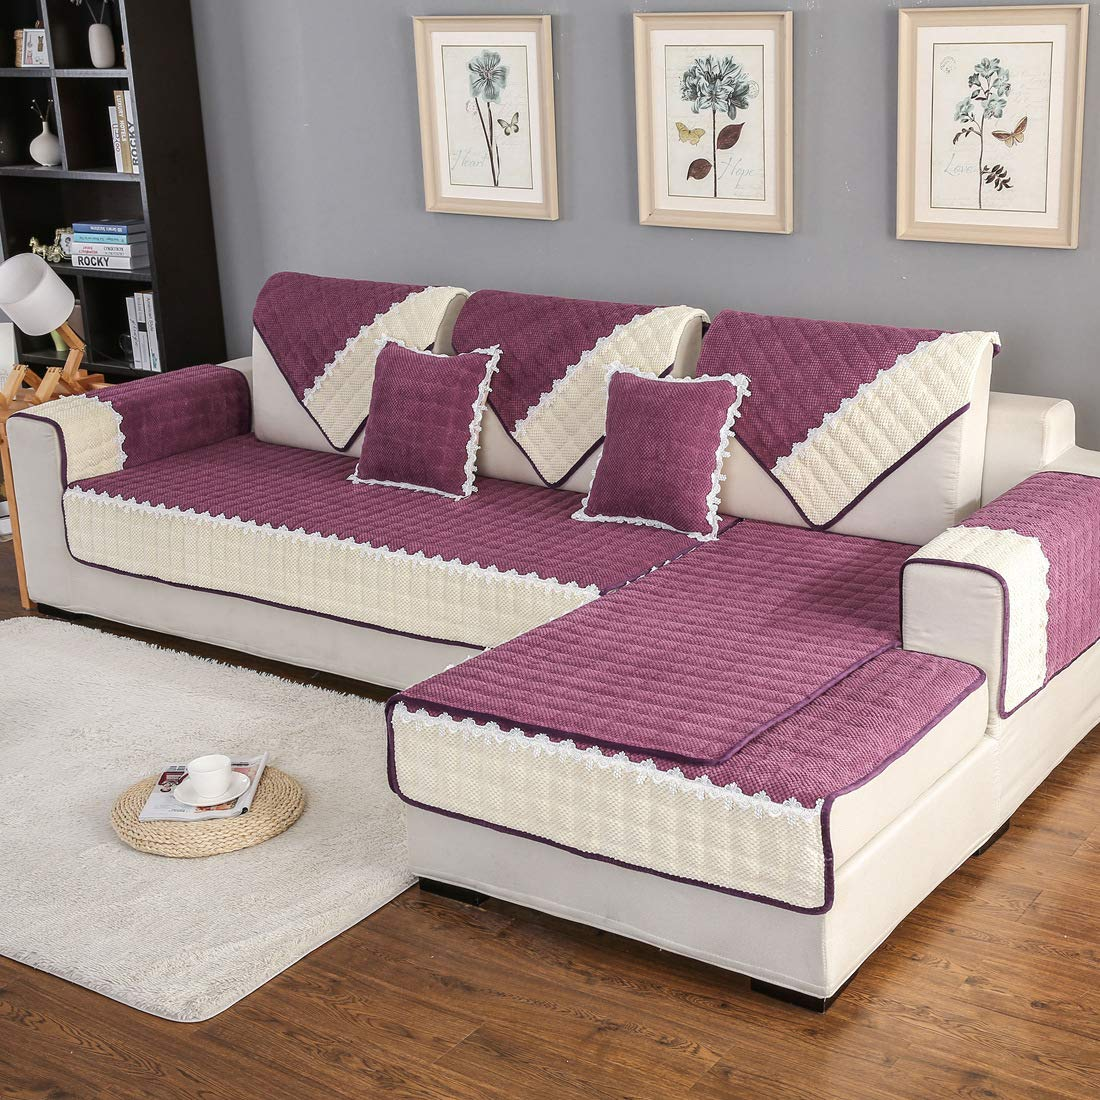 Royhom Corduroy Sofa Protector Sofa Slipcover Keeps Furniture Safe from Kids Dogs Pets   Backrest and Armrest Sold Separately   Purple 43'' x 94''